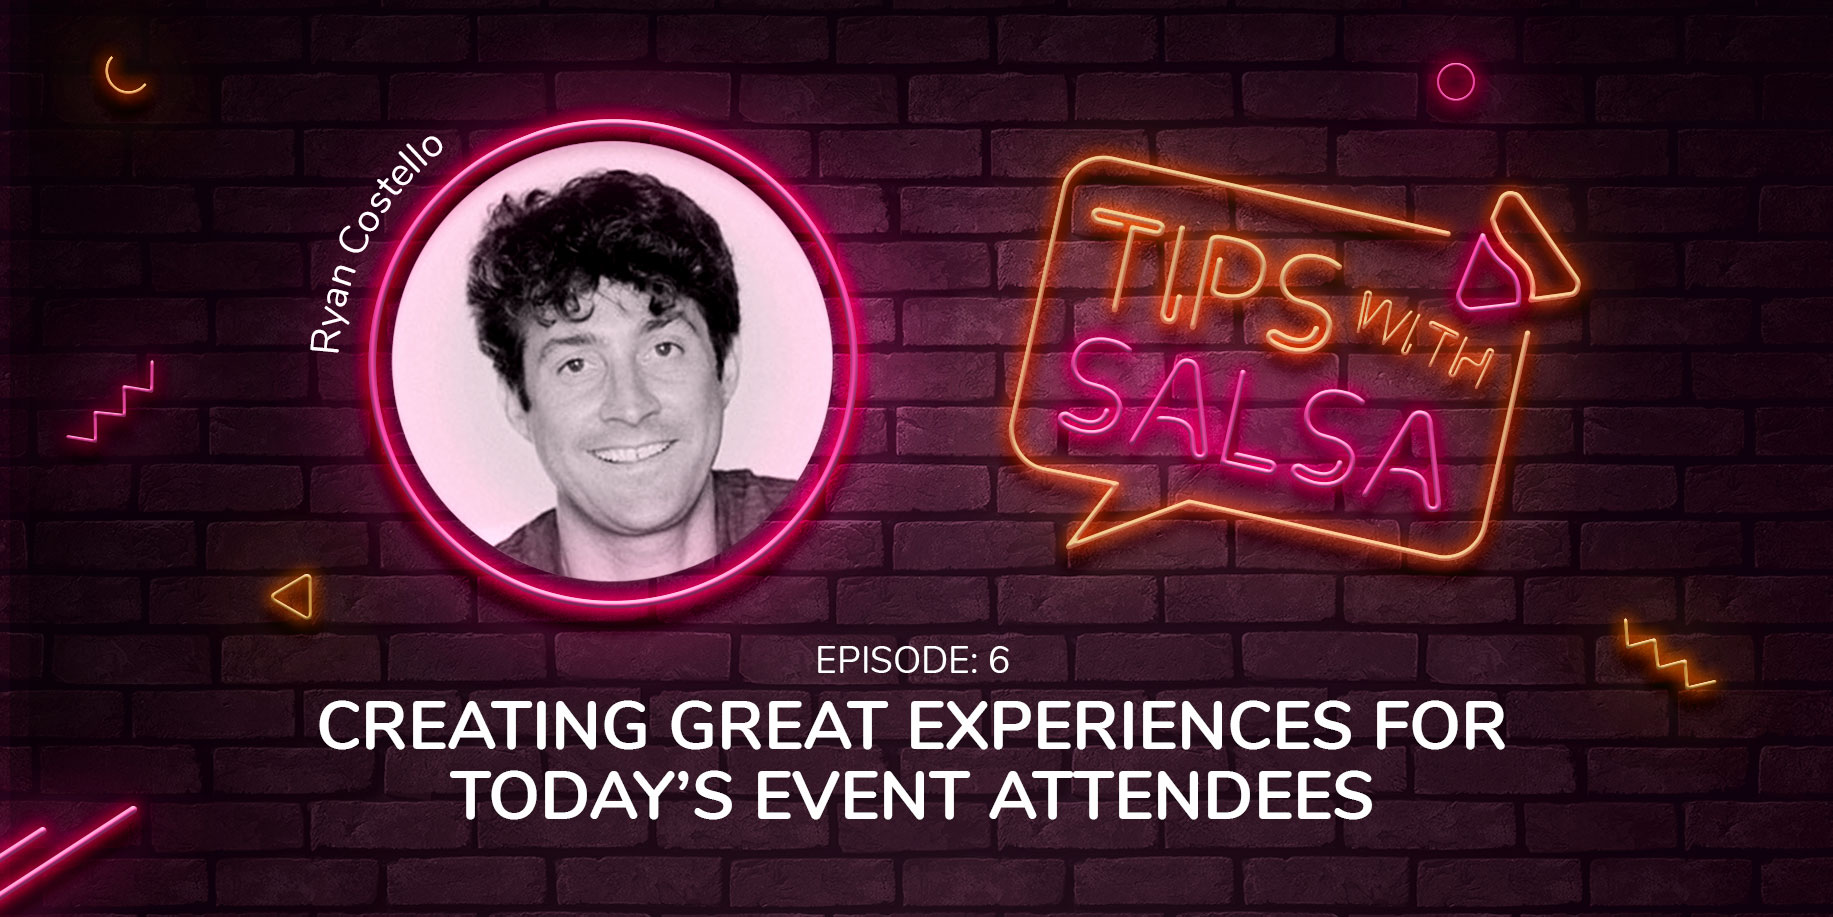 Creating Great Experiences for Today's Event Attendees